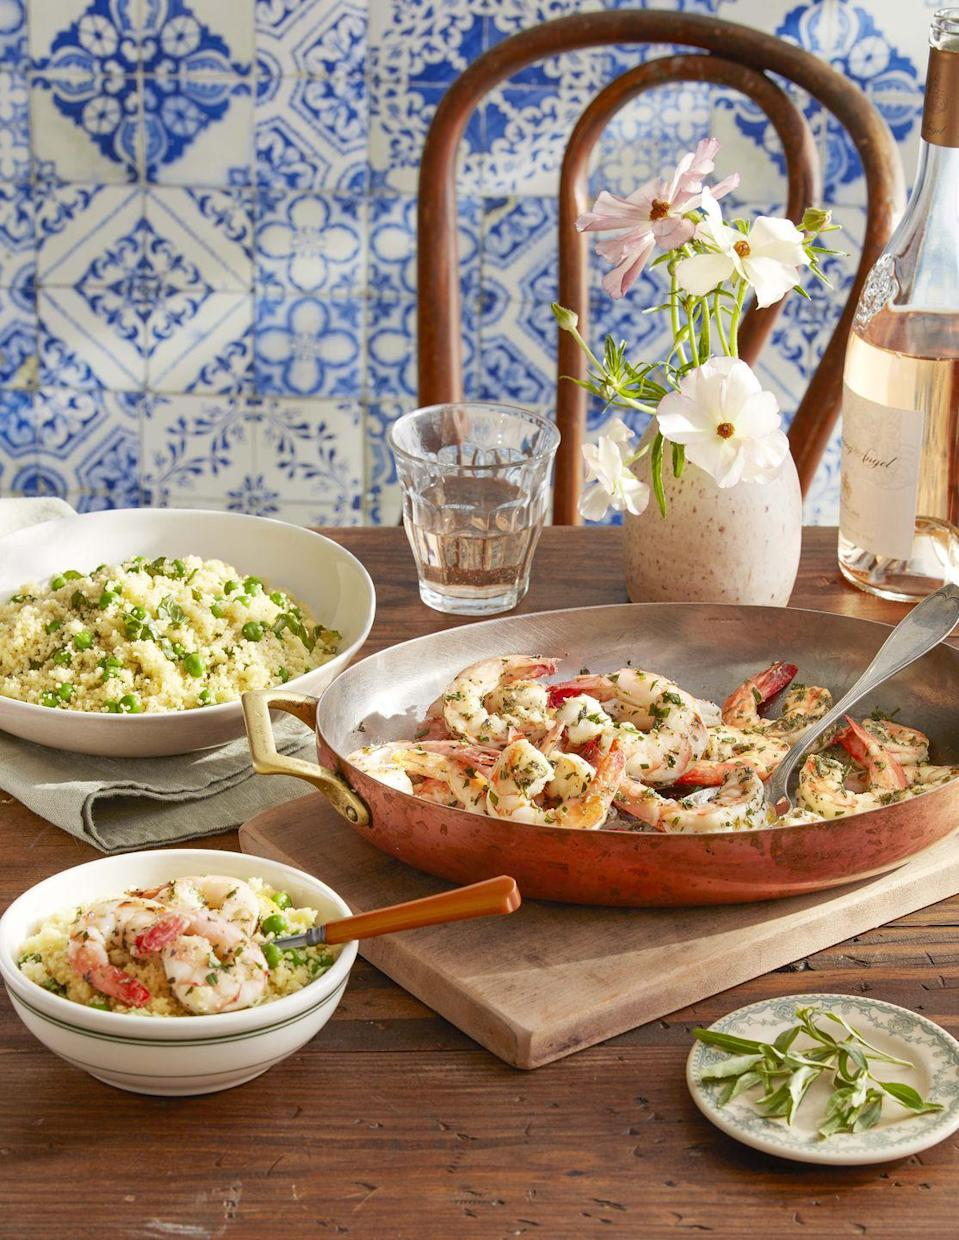 """<p>This lovely shrimp-and-couscous dish gets a huge burst of flavor from the floral combination of thyme, rosemary, tarragon, and lavender.</p><p><strong><a href=""""https://www.countryliving.com/food-drinks/a32042730/herbes-de-provence-shrimp-with-basil-and-pea-couscous/"""" rel=""""nofollow noopener"""" target=""""_blank"""" data-ylk=""""slk:Get the recipe"""" class=""""link rapid-noclick-resp"""">Get the recipe</a>.</strong></p><p><strong><a class=""""link rapid-noclick-resp"""" href=""""https://www.amazon.com/Lagostina-Q554SA64-Martellata-Hammered-Stainless/dp/B014X01E66?tag=syn-yahoo-20&ascsubtag=%5Bartid%7C10050.g.1115%5Bsrc%7Cyahoo-us"""" rel=""""nofollow noopener"""" target=""""_blank"""" data-ylk=""""slk:SHOP COPPER COOKWARE"""">SHOP COPPER COOKWARE</a><br></strong></p>"""